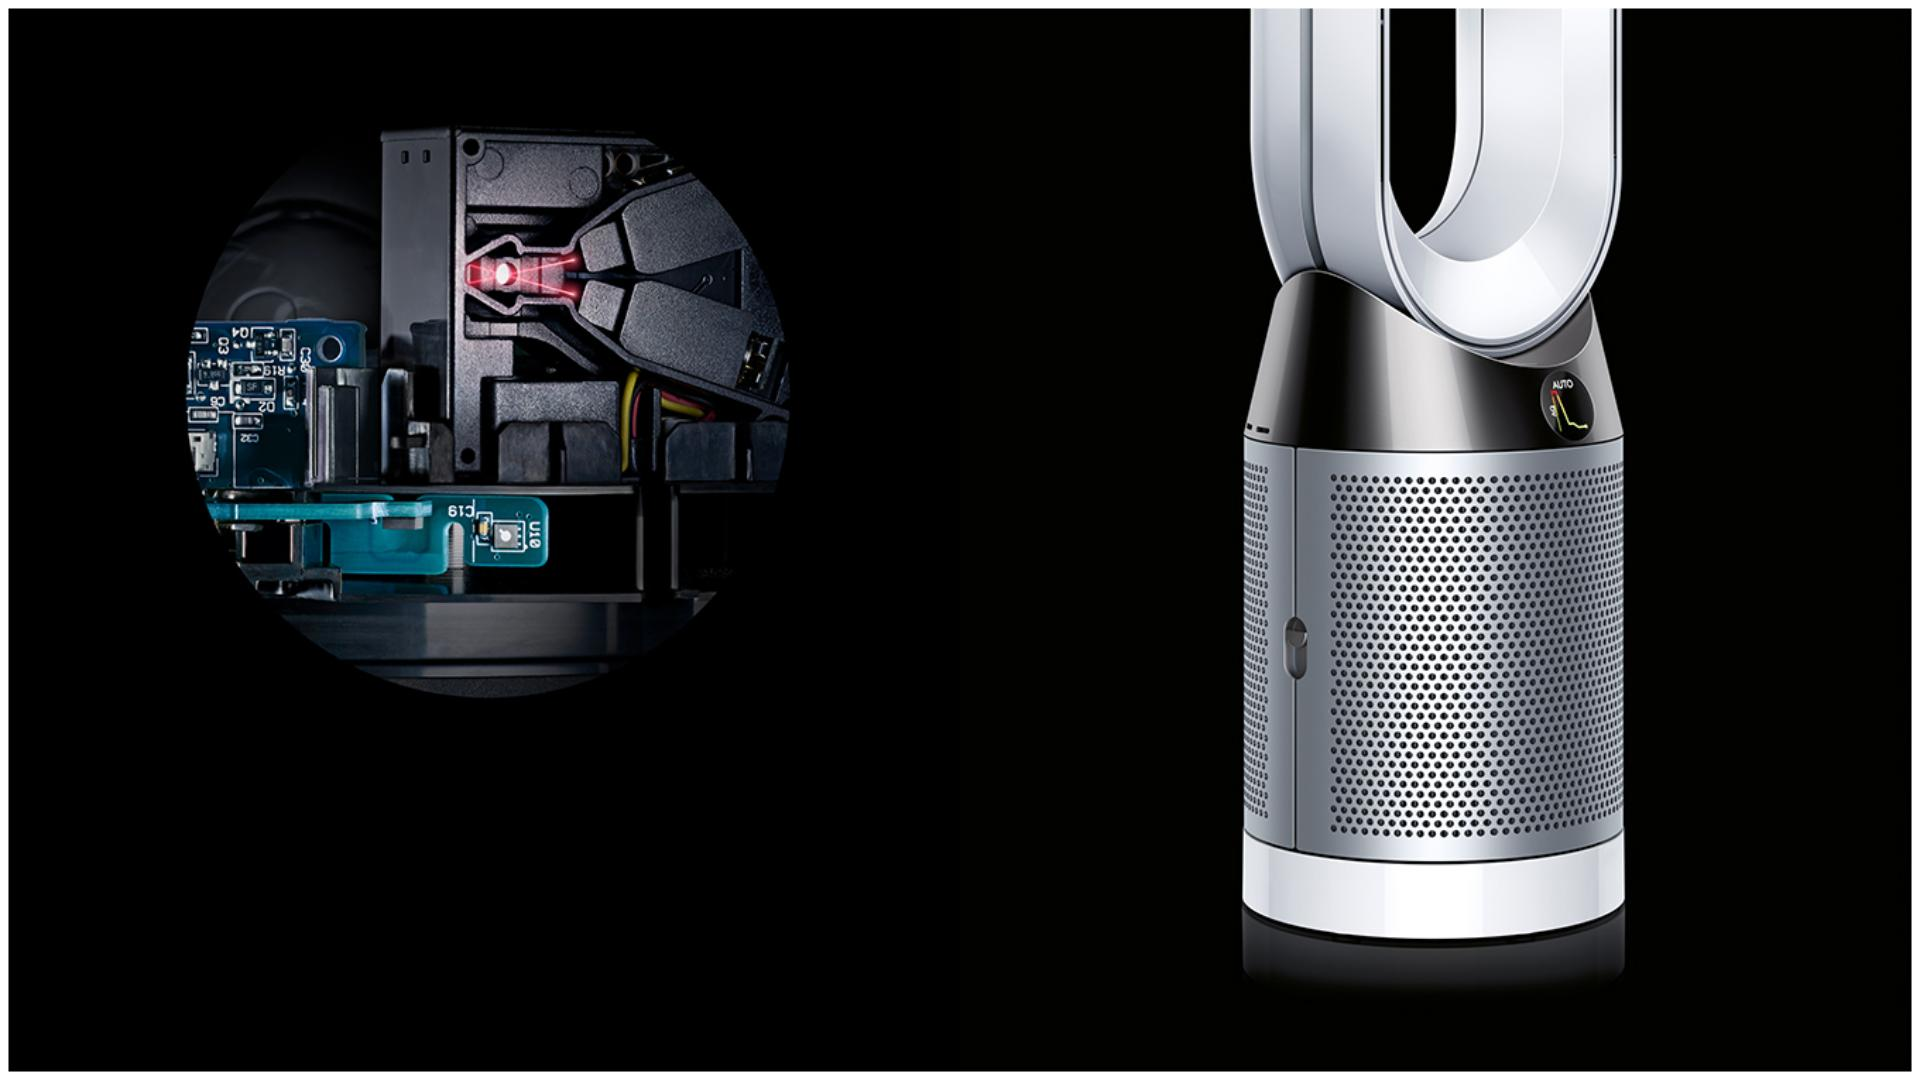 X-ray of the technology inside the Dyson Pure Cool purifying fan